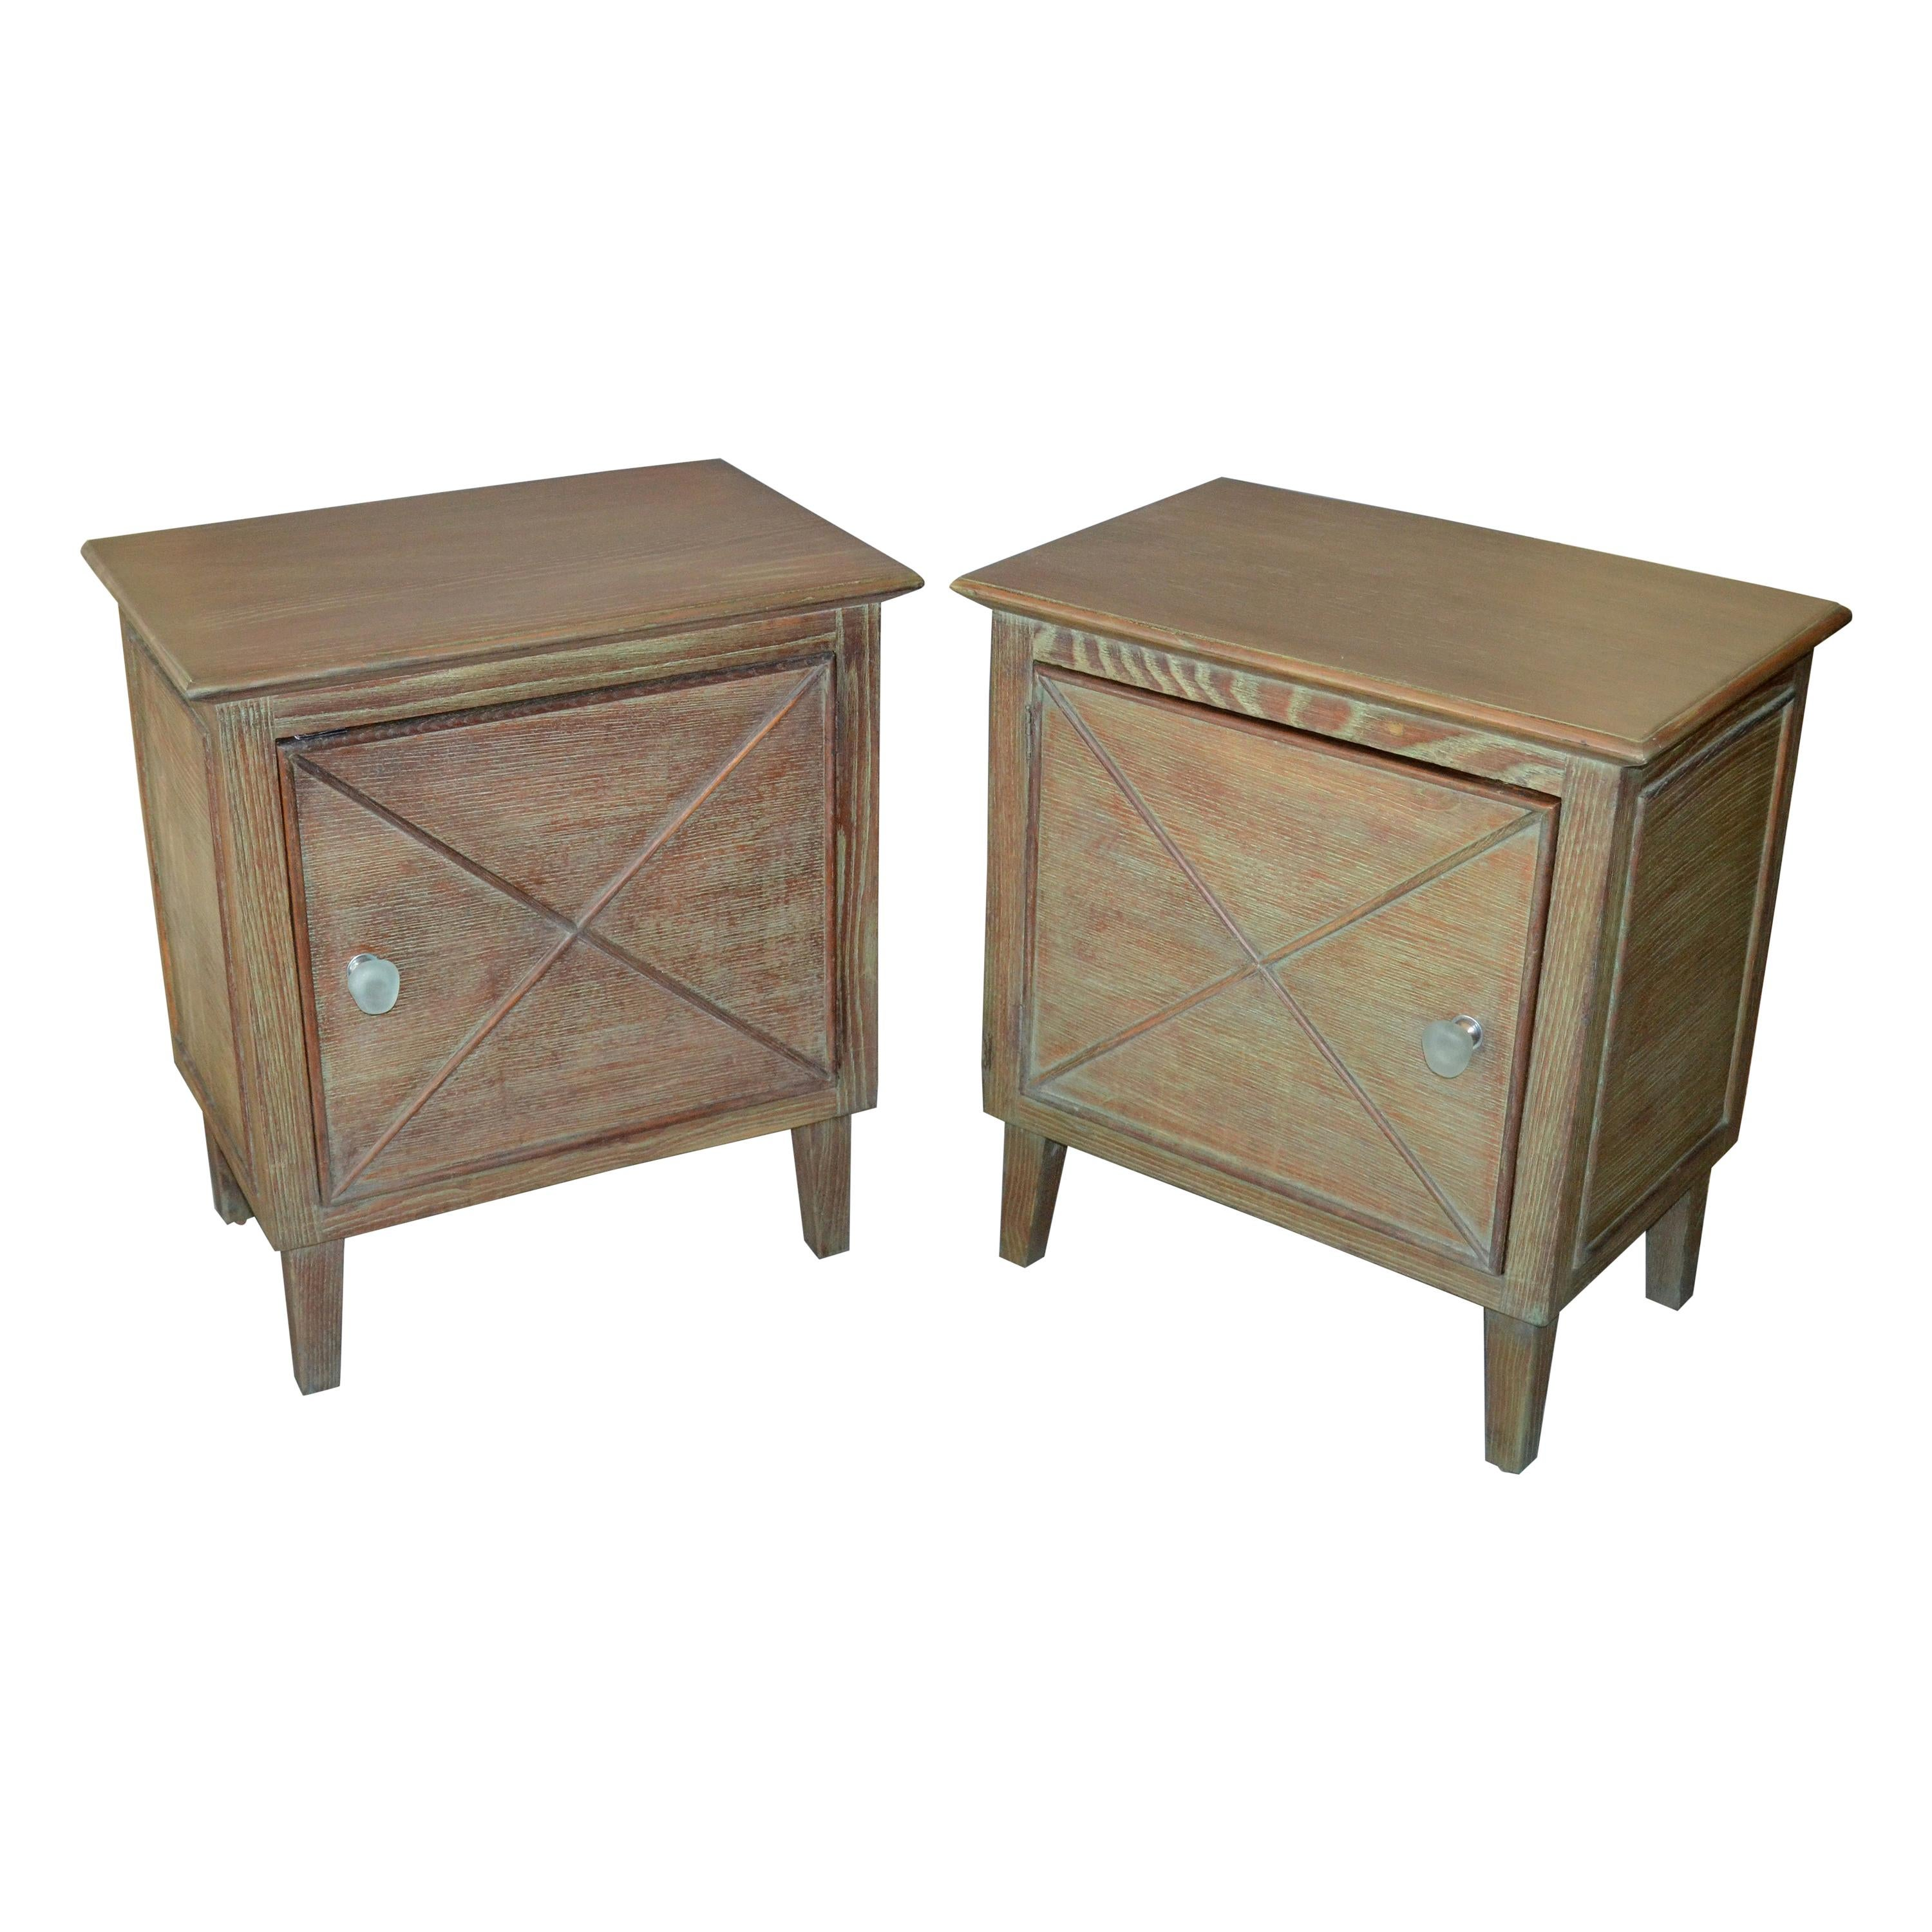 Two Mid-Century Modern Oak Nightstands Bedside Tables Cerused Finish Resin Knobs